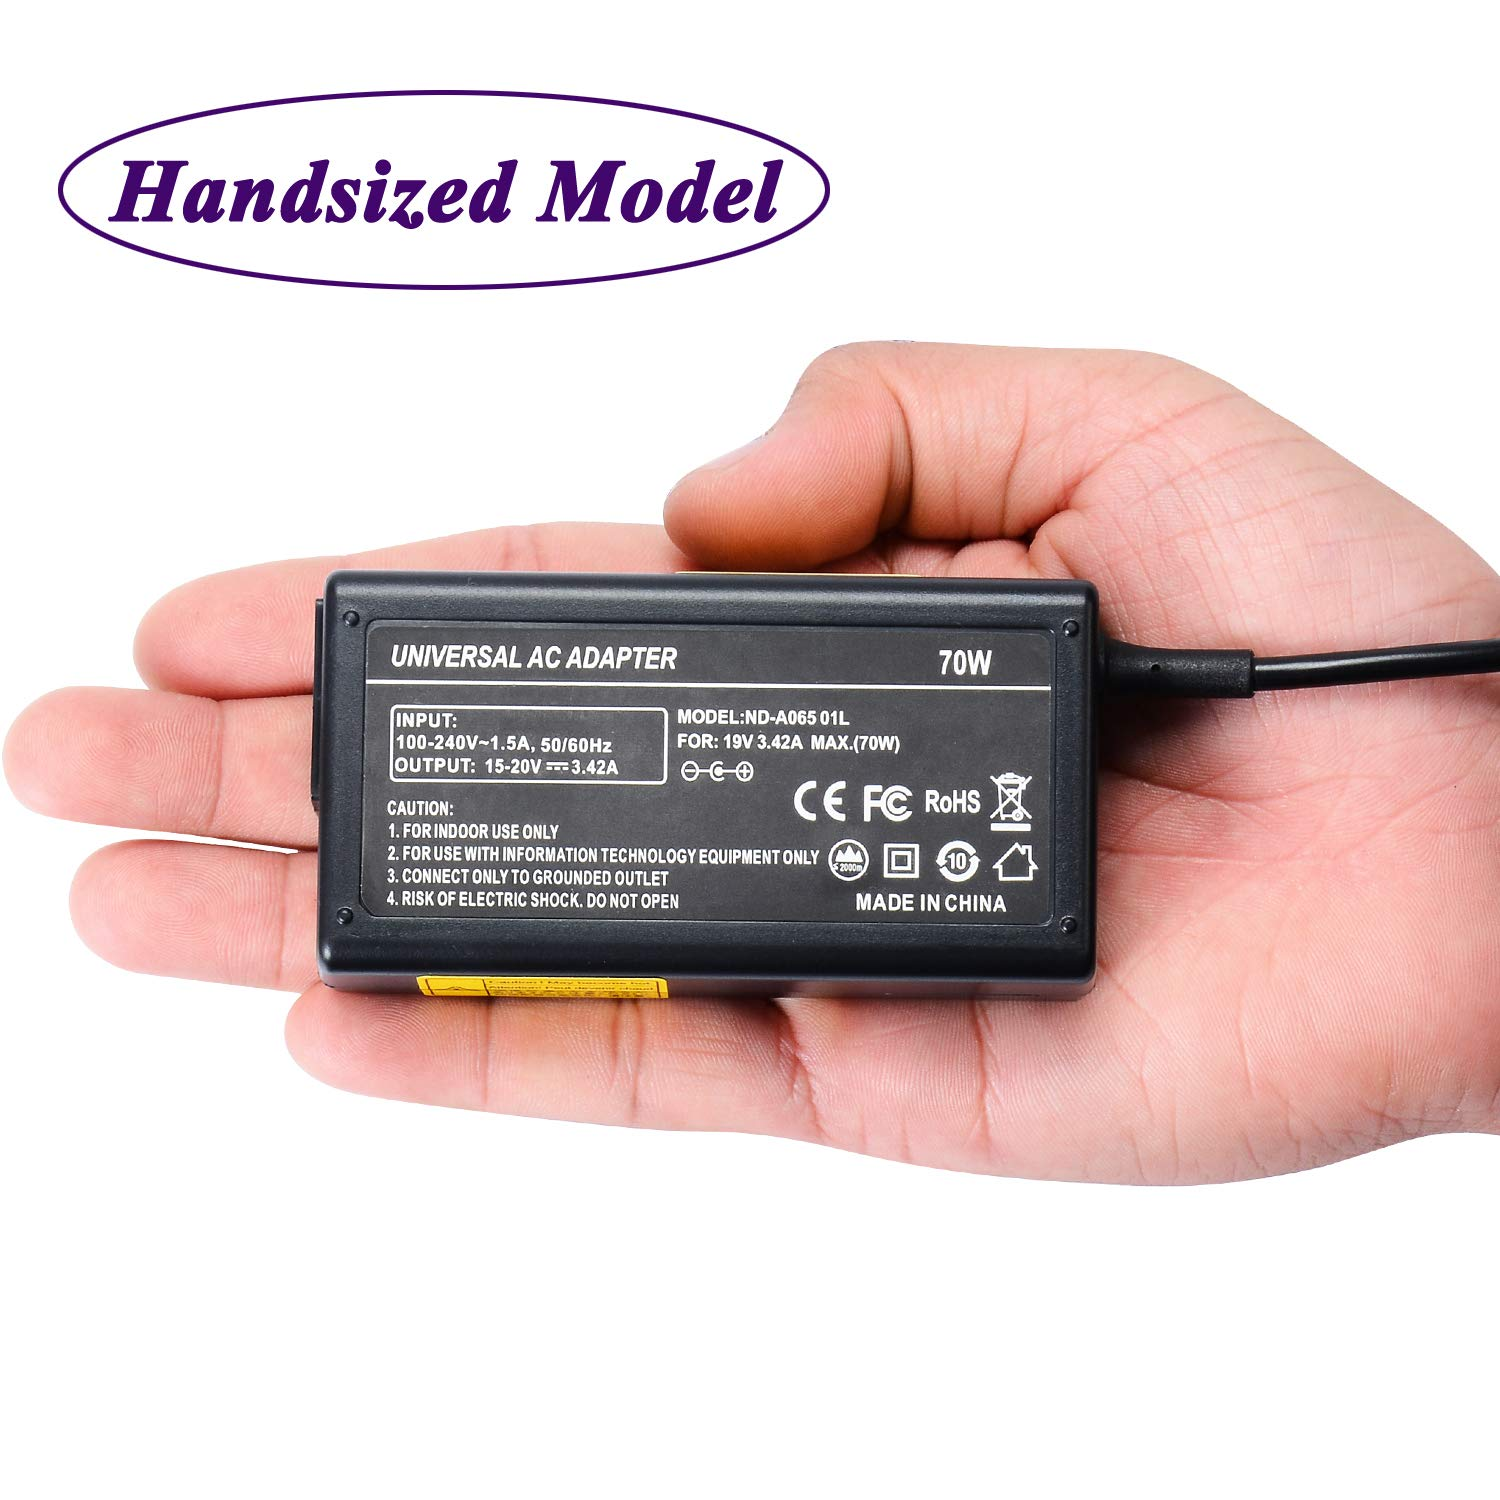 70W Laptop Charger 19V 3.42A Notebook AC Adapter for Lenovo Thinkpad E431 E440 E450 E450C E460 E470 E470C E475 E531 E560 E565 E570 E570C E570C E575; X230 X230S X240 X240S X250 X260 X270; T431 T431S T440 T440S T450 T450S T460 T460S T470 T470S;S1 S2 S3 S5Yog